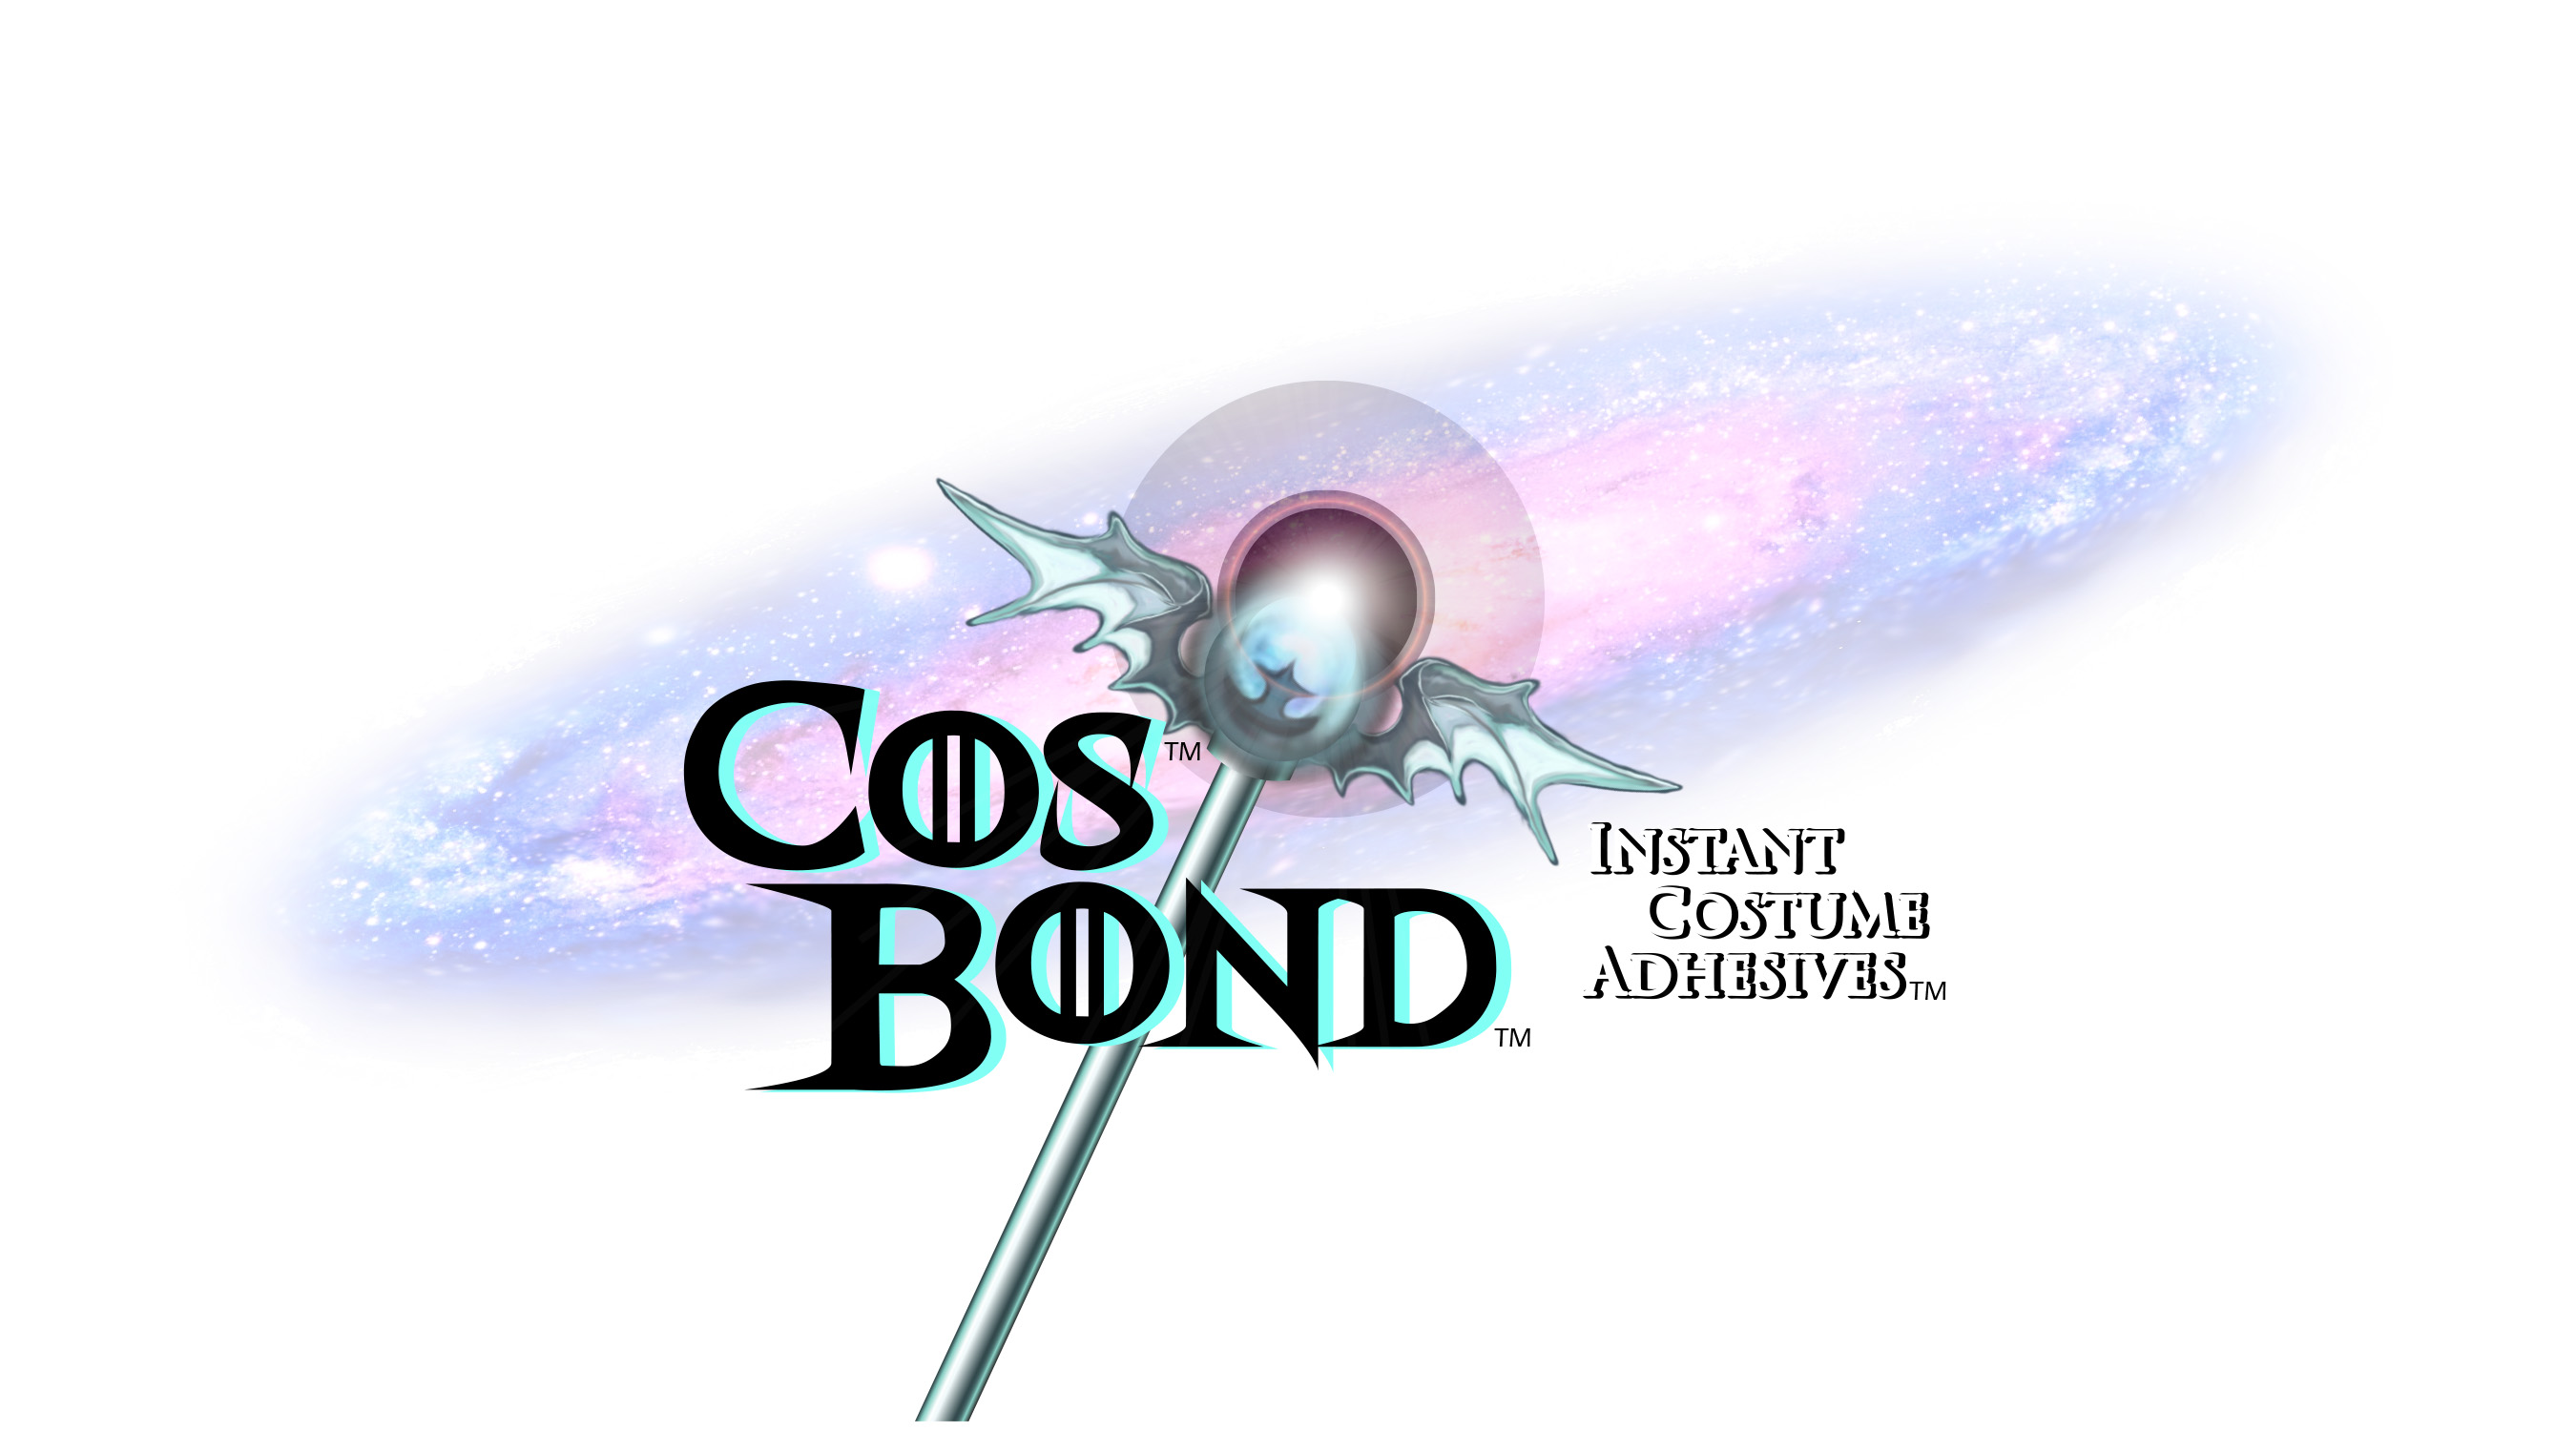 Cos Bond Instant Costume Adhesive